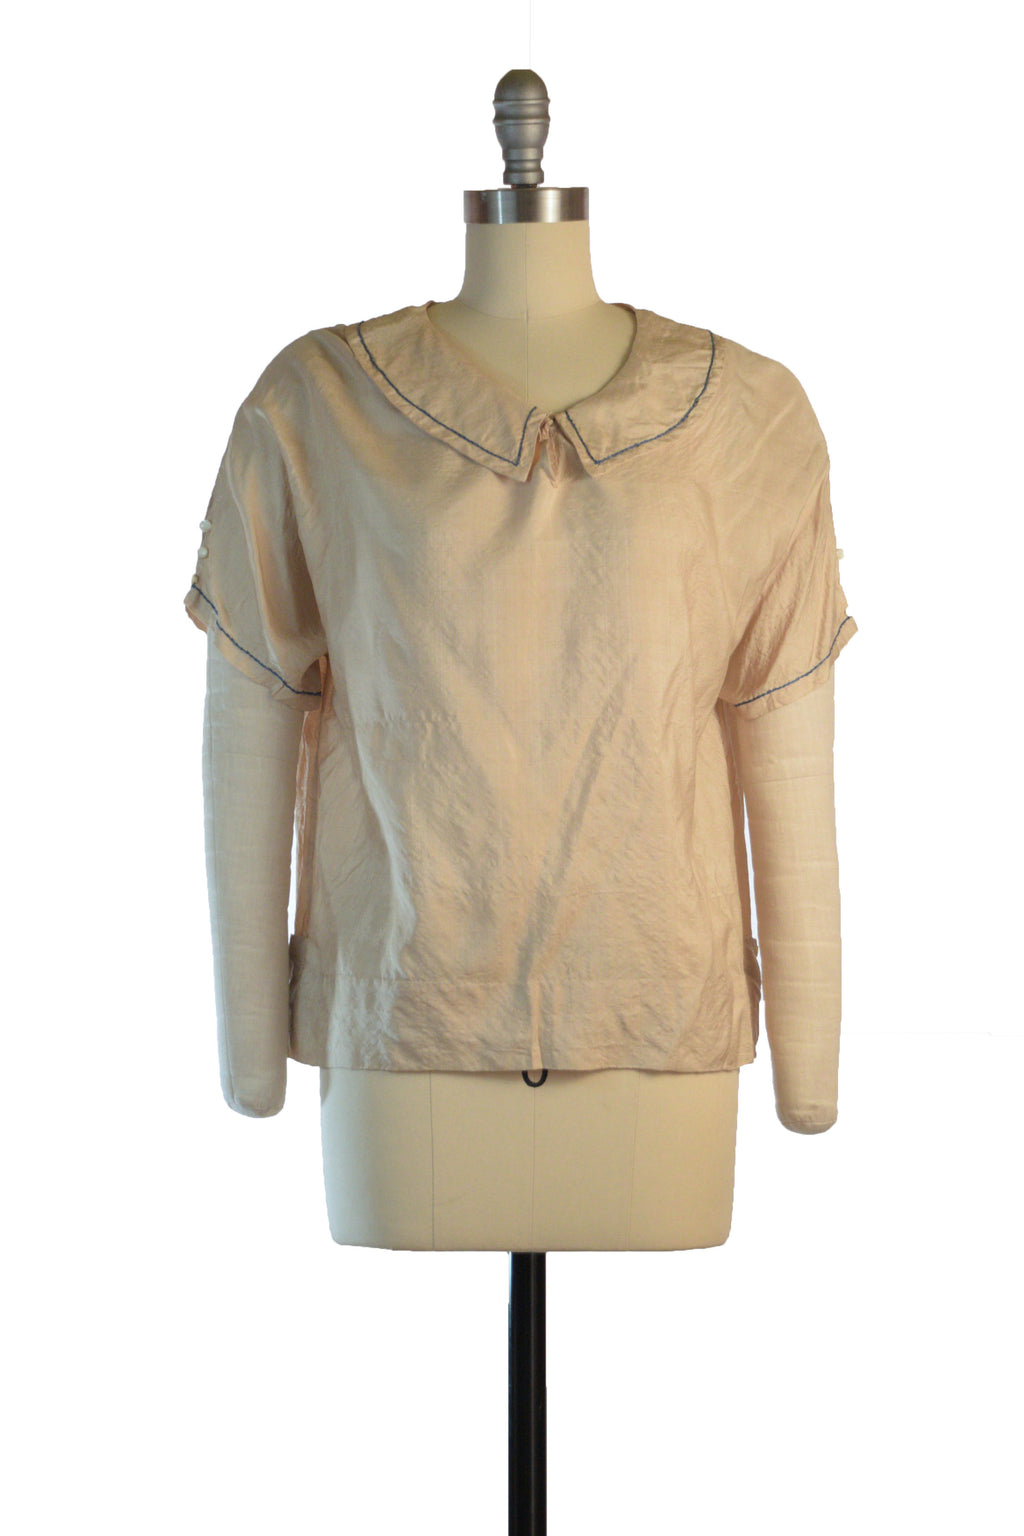 Cute 1920s Raw Silk Middy Blouse with Blue Trim and Button Accents